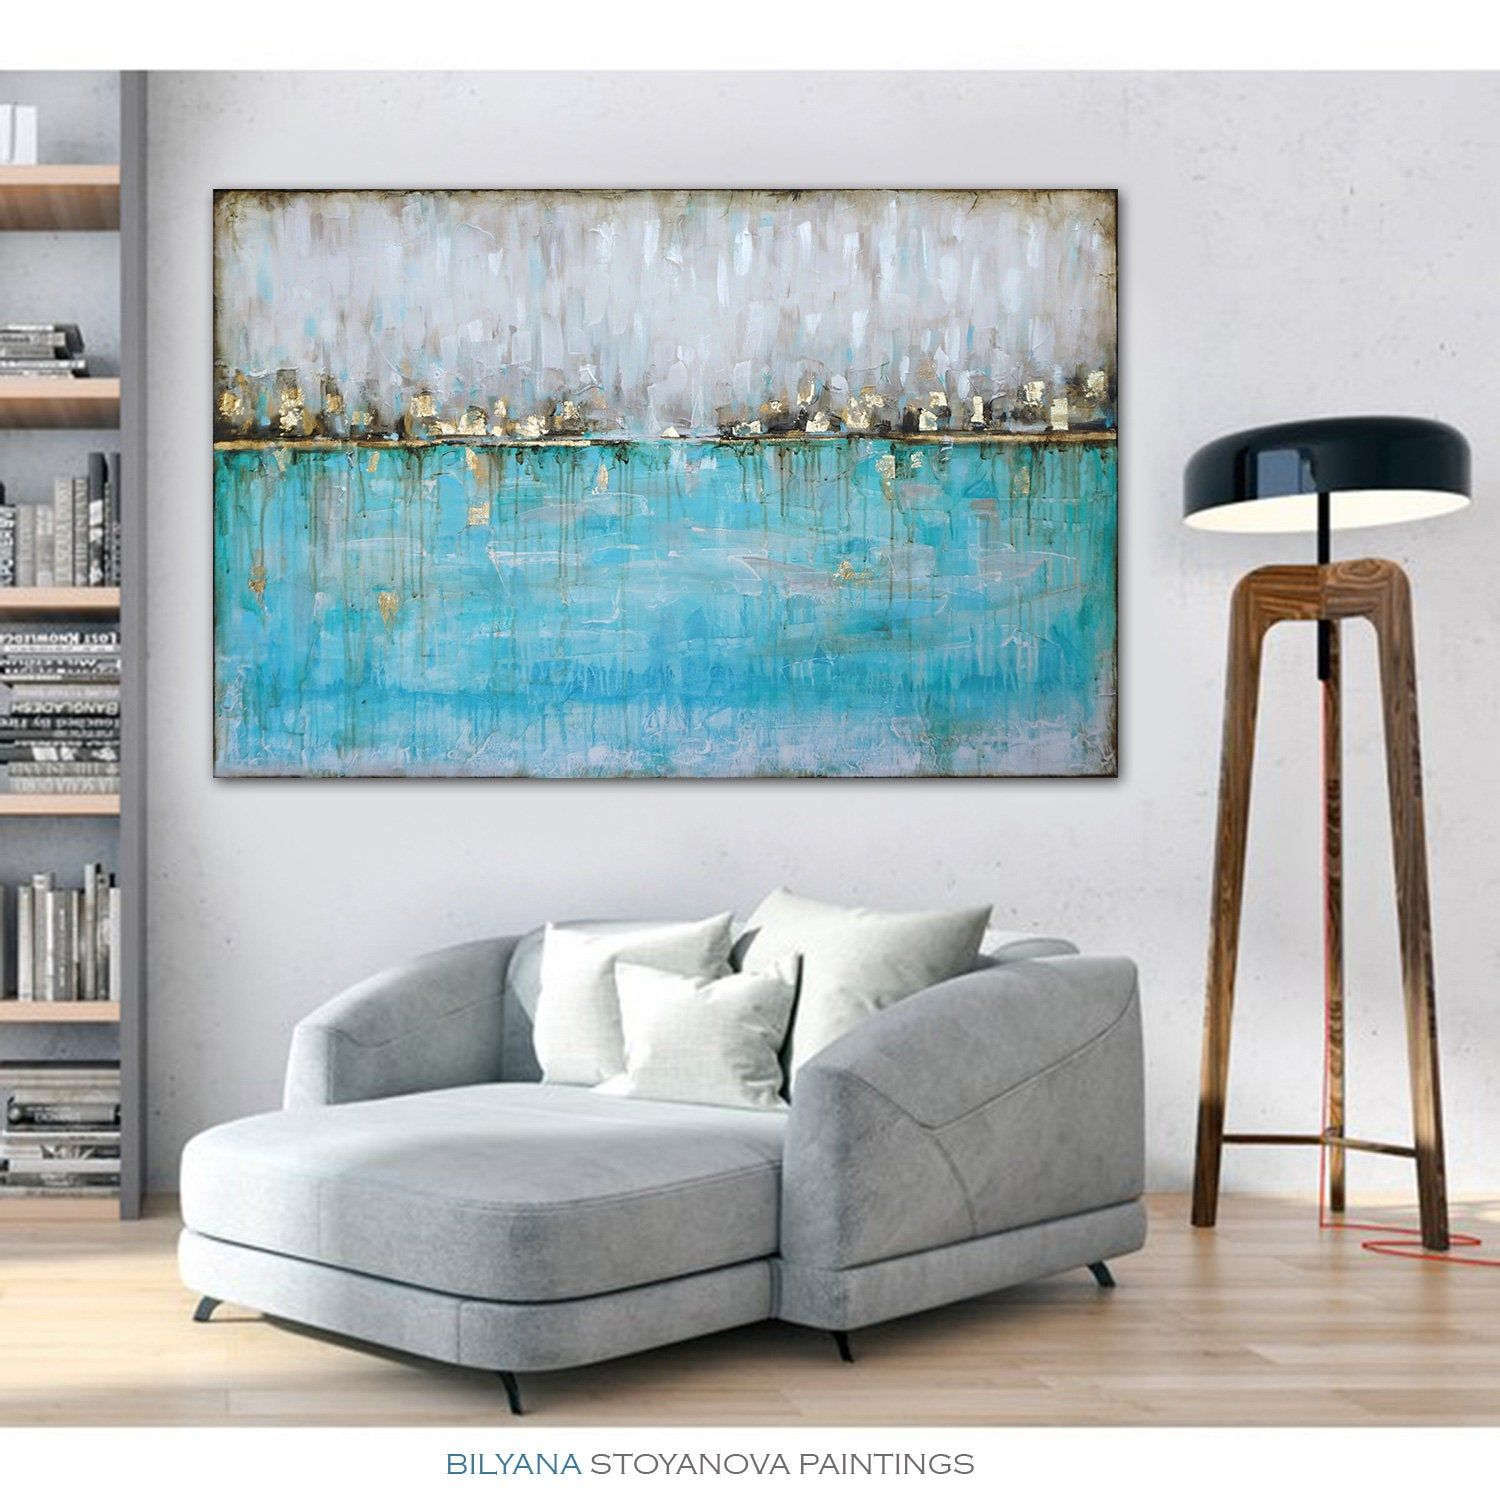 11 ORIGINAL One Of a Kind etsy shop Reflections 10, Large Teal and ...